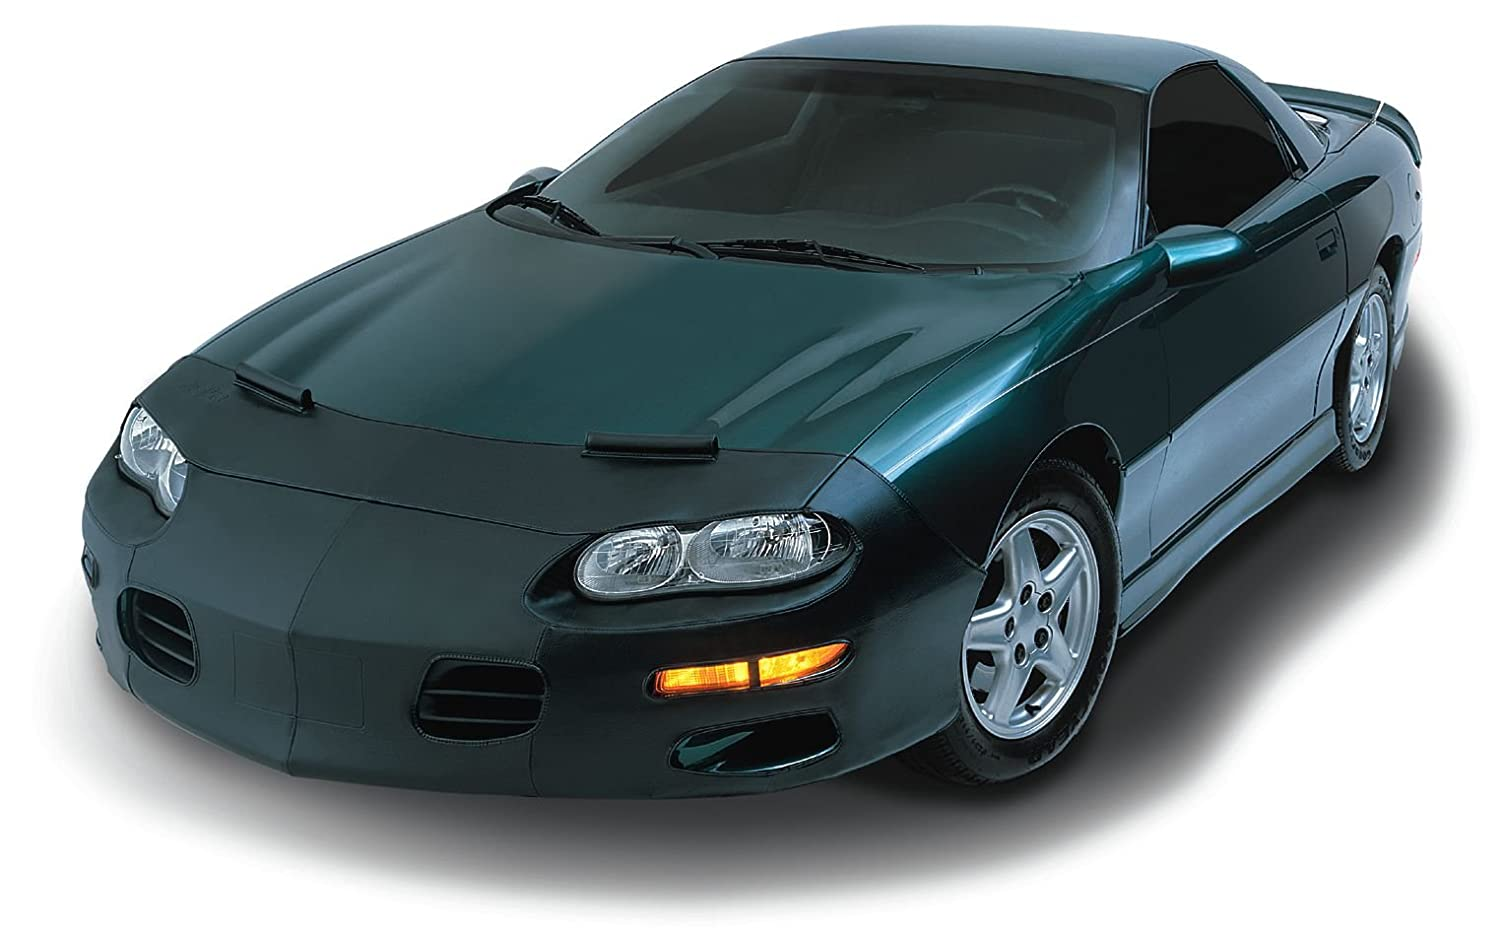 LeBra 551425-01 Each LeBra is specifically designed to your exact vehicle model. If your model has fog lights special air-intakes or even pop-up headlights there is a LeBra for you. Front End Bra LeBra Custom Front End Cover